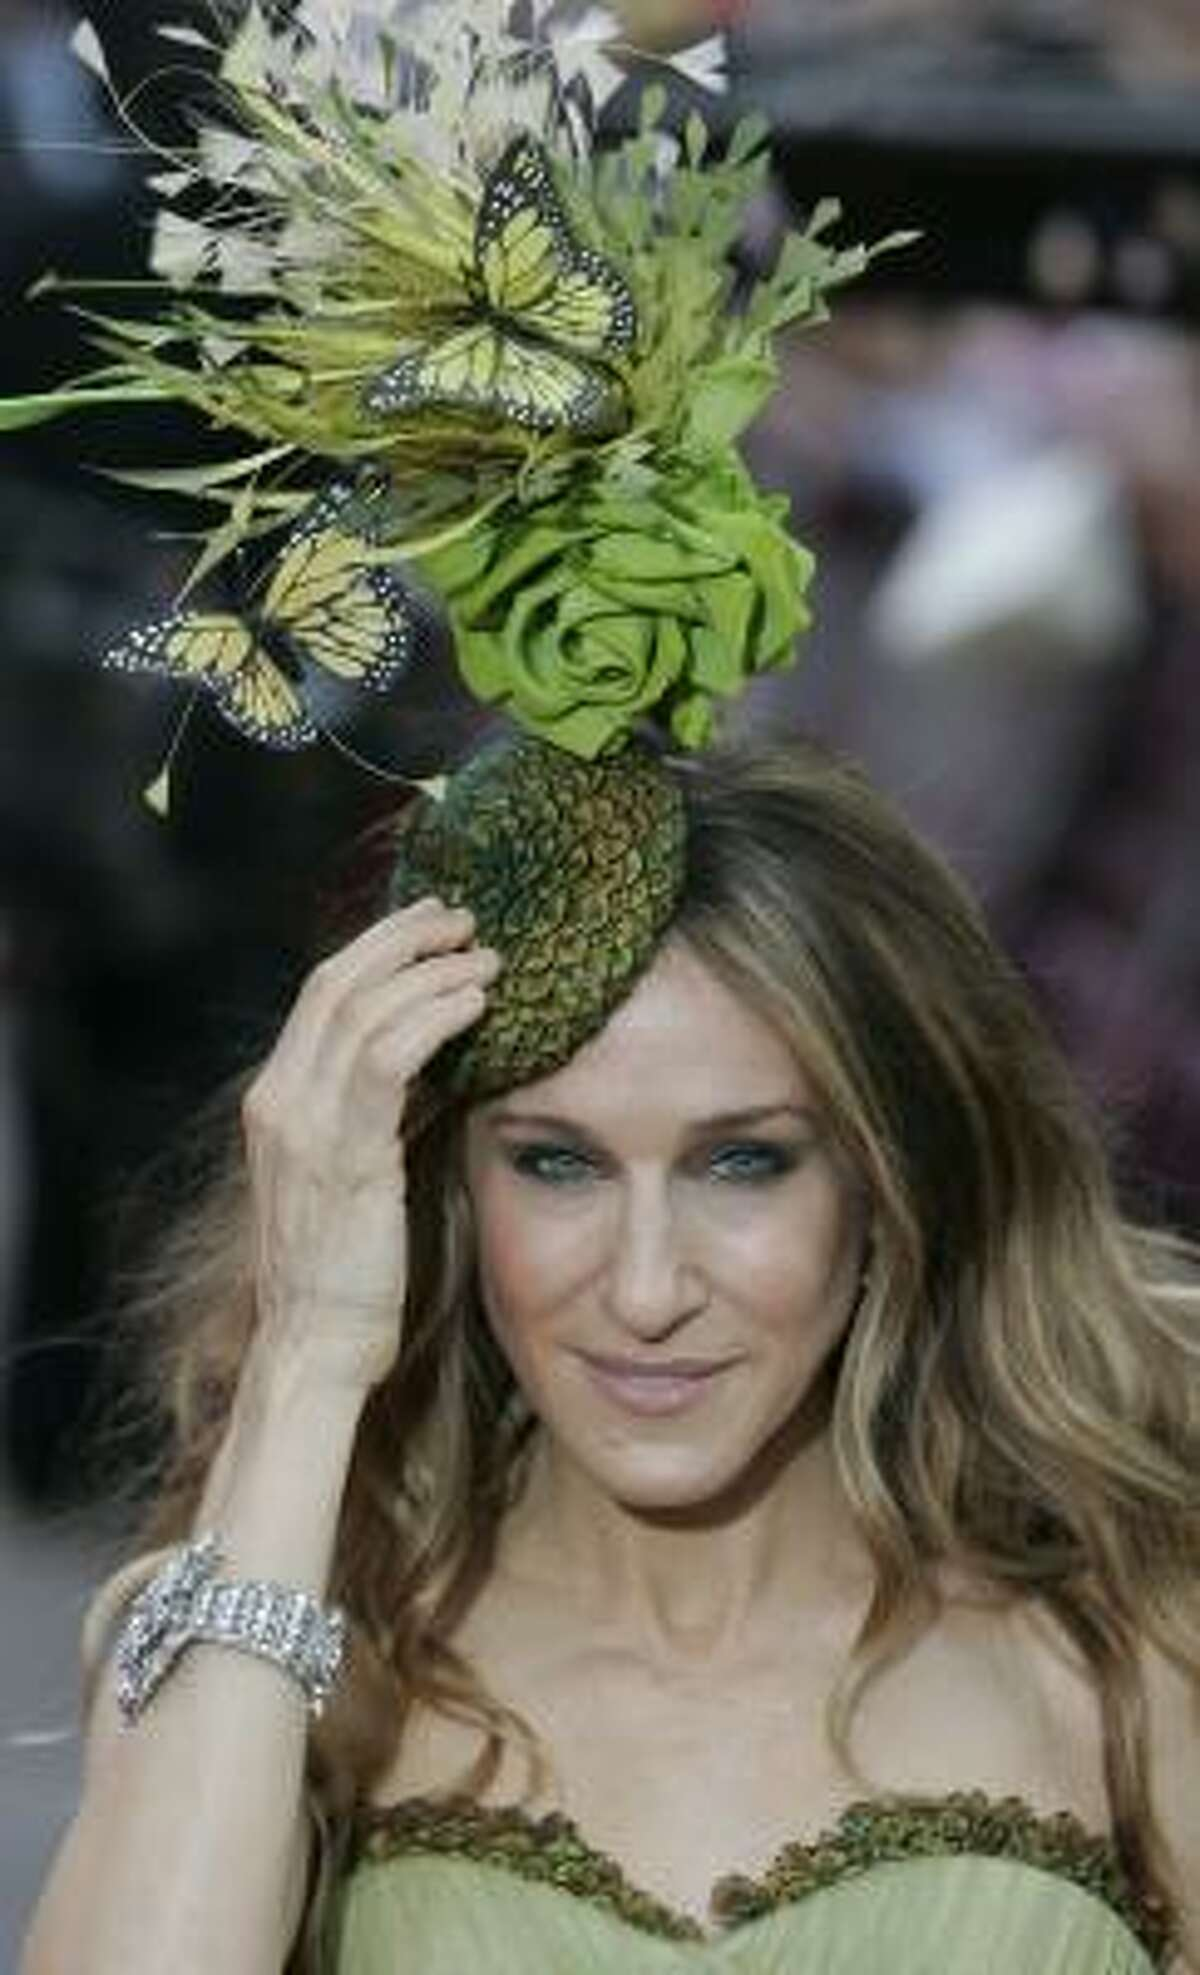 He also designed the hat Sarah Jessica Parker wore to the London premiere of Sex and the City.